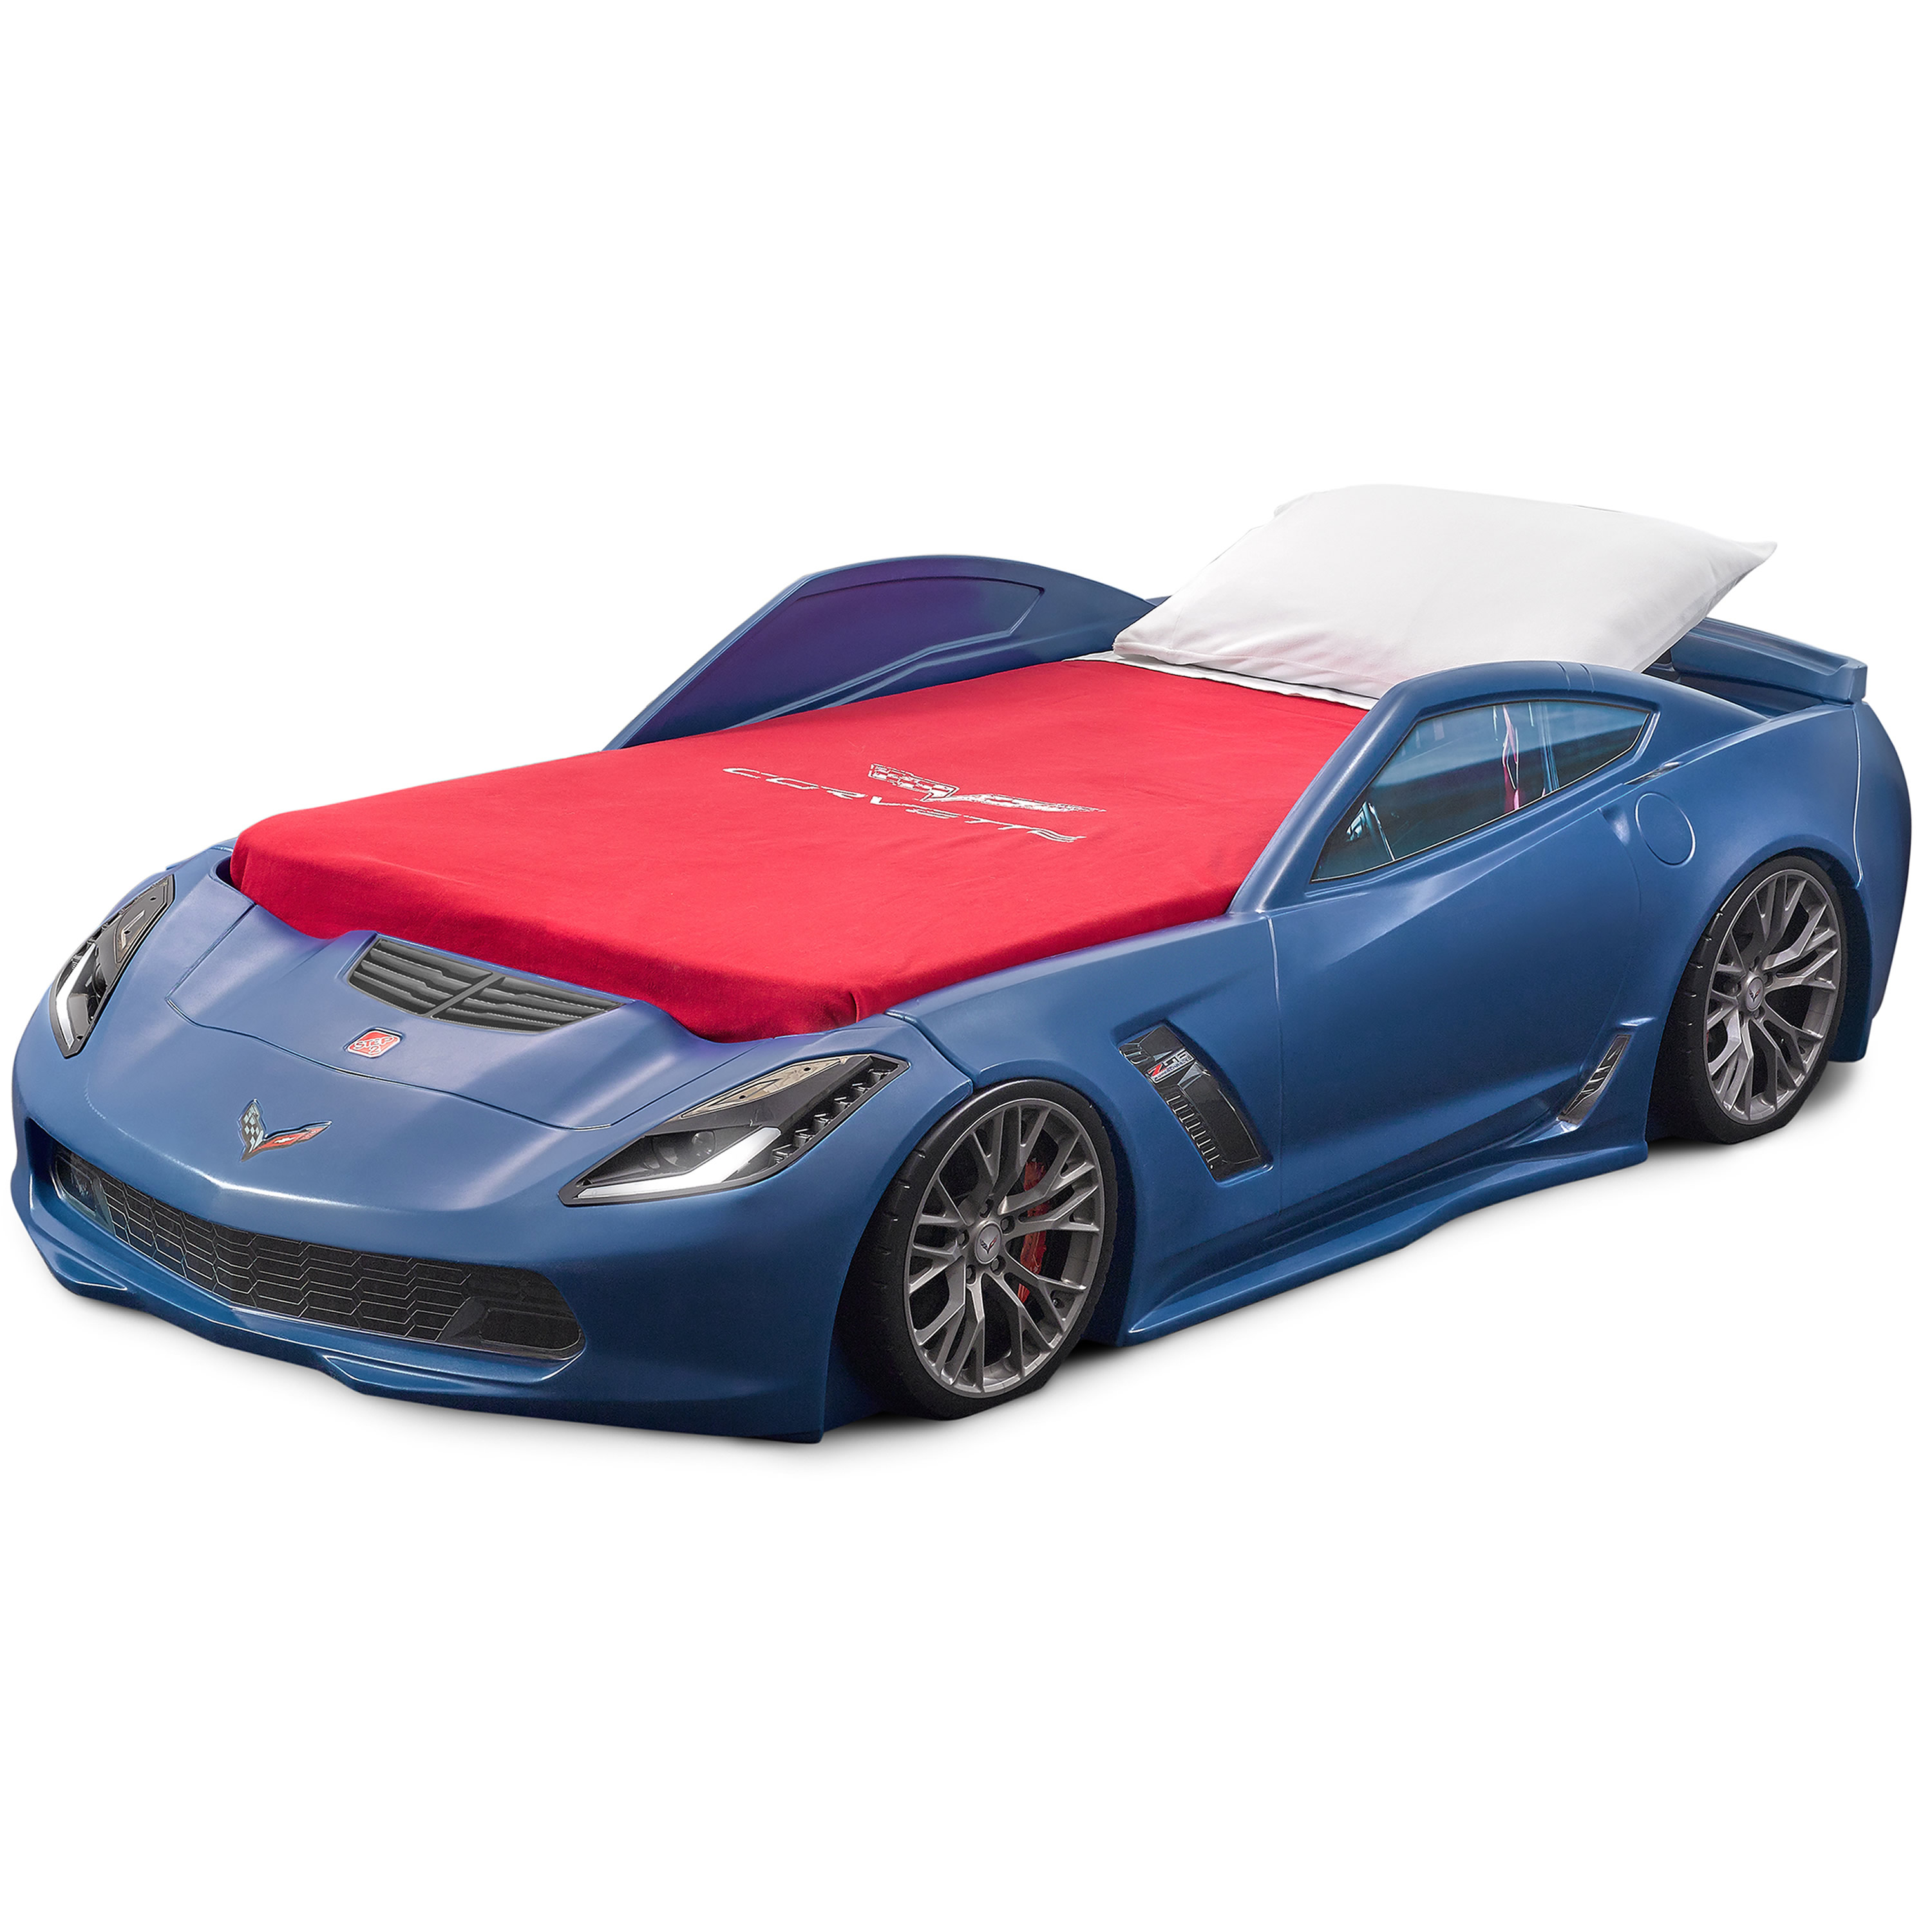 Step2 Corvette z06 Convertible Toddler to Twin Bed with Lights, Blue by Step2